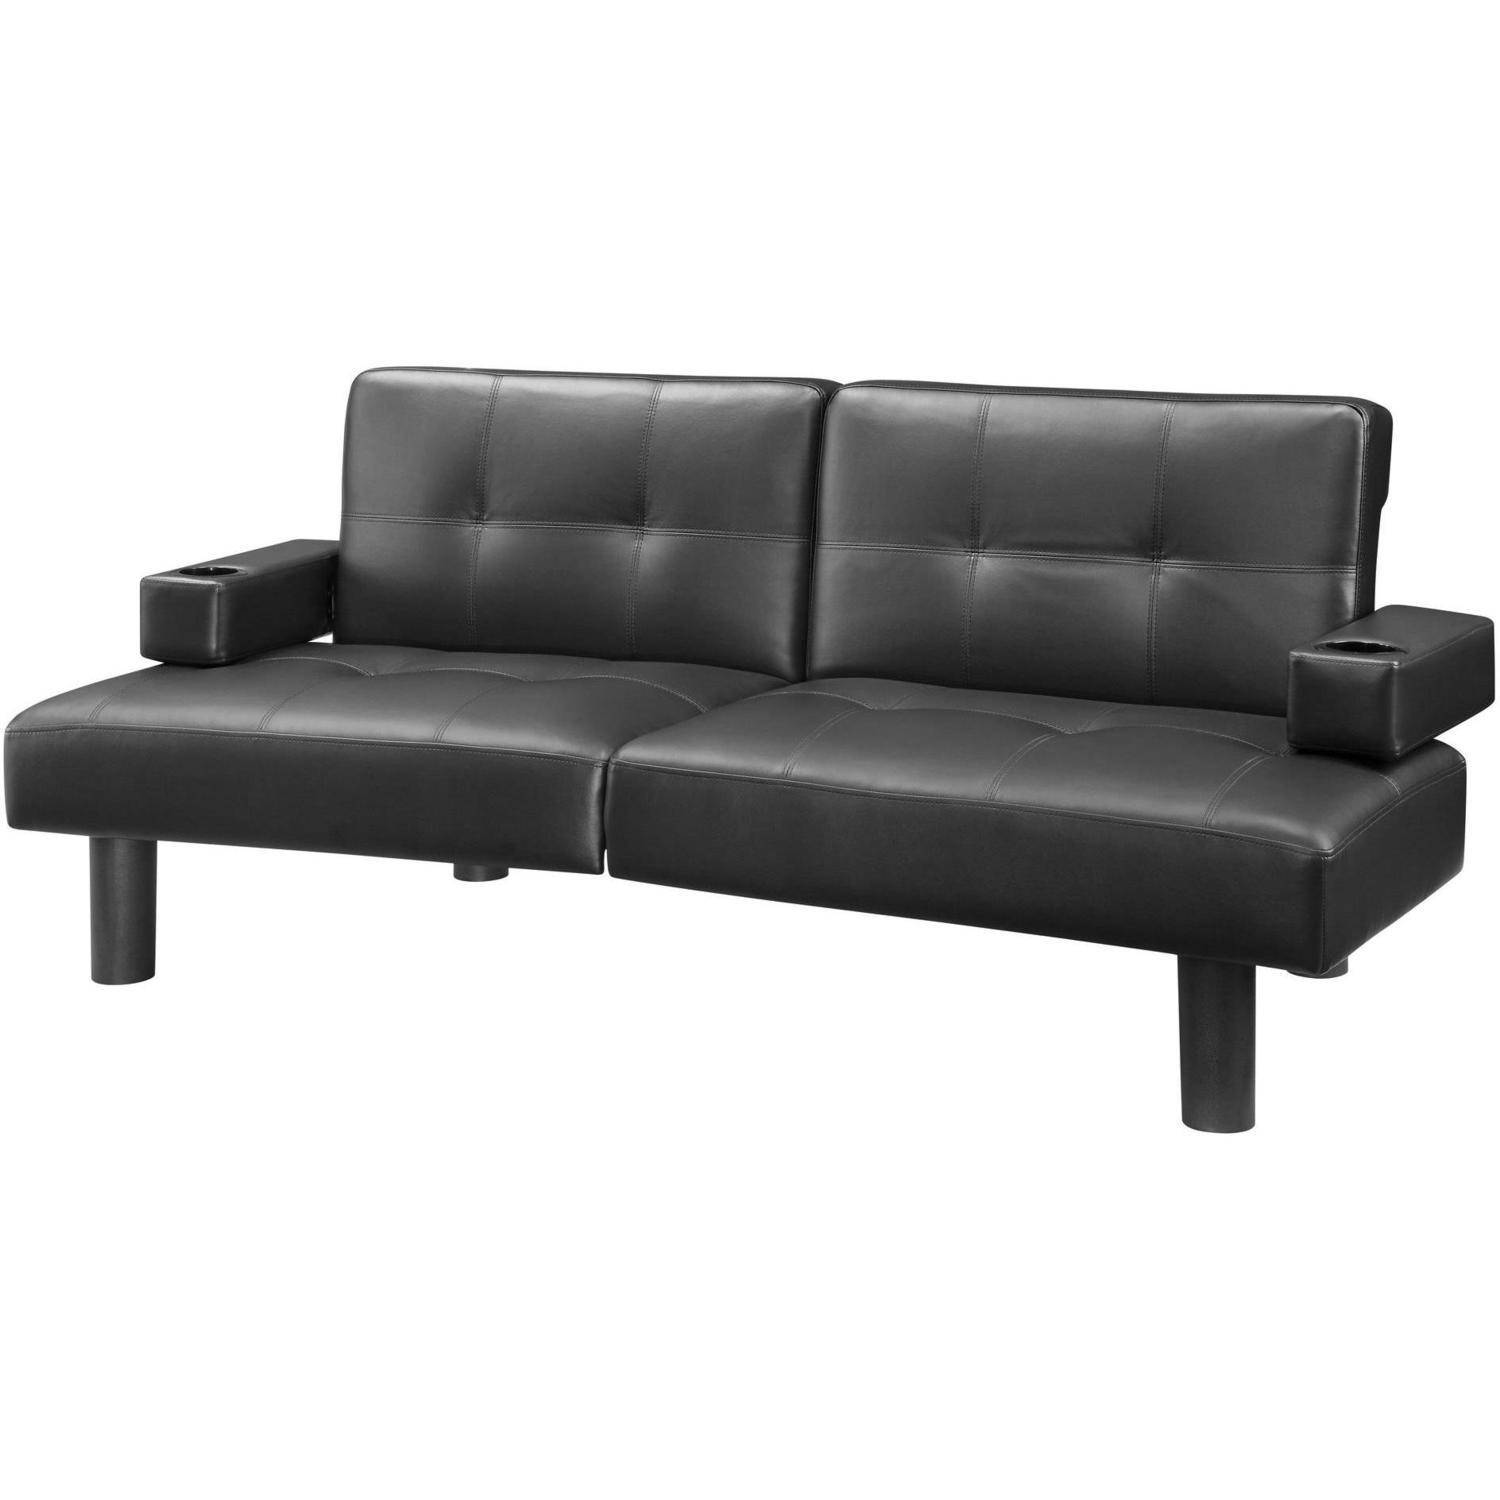 Mainstays Connectrix Faux Leather Futon Multiple Colors Walmartcom